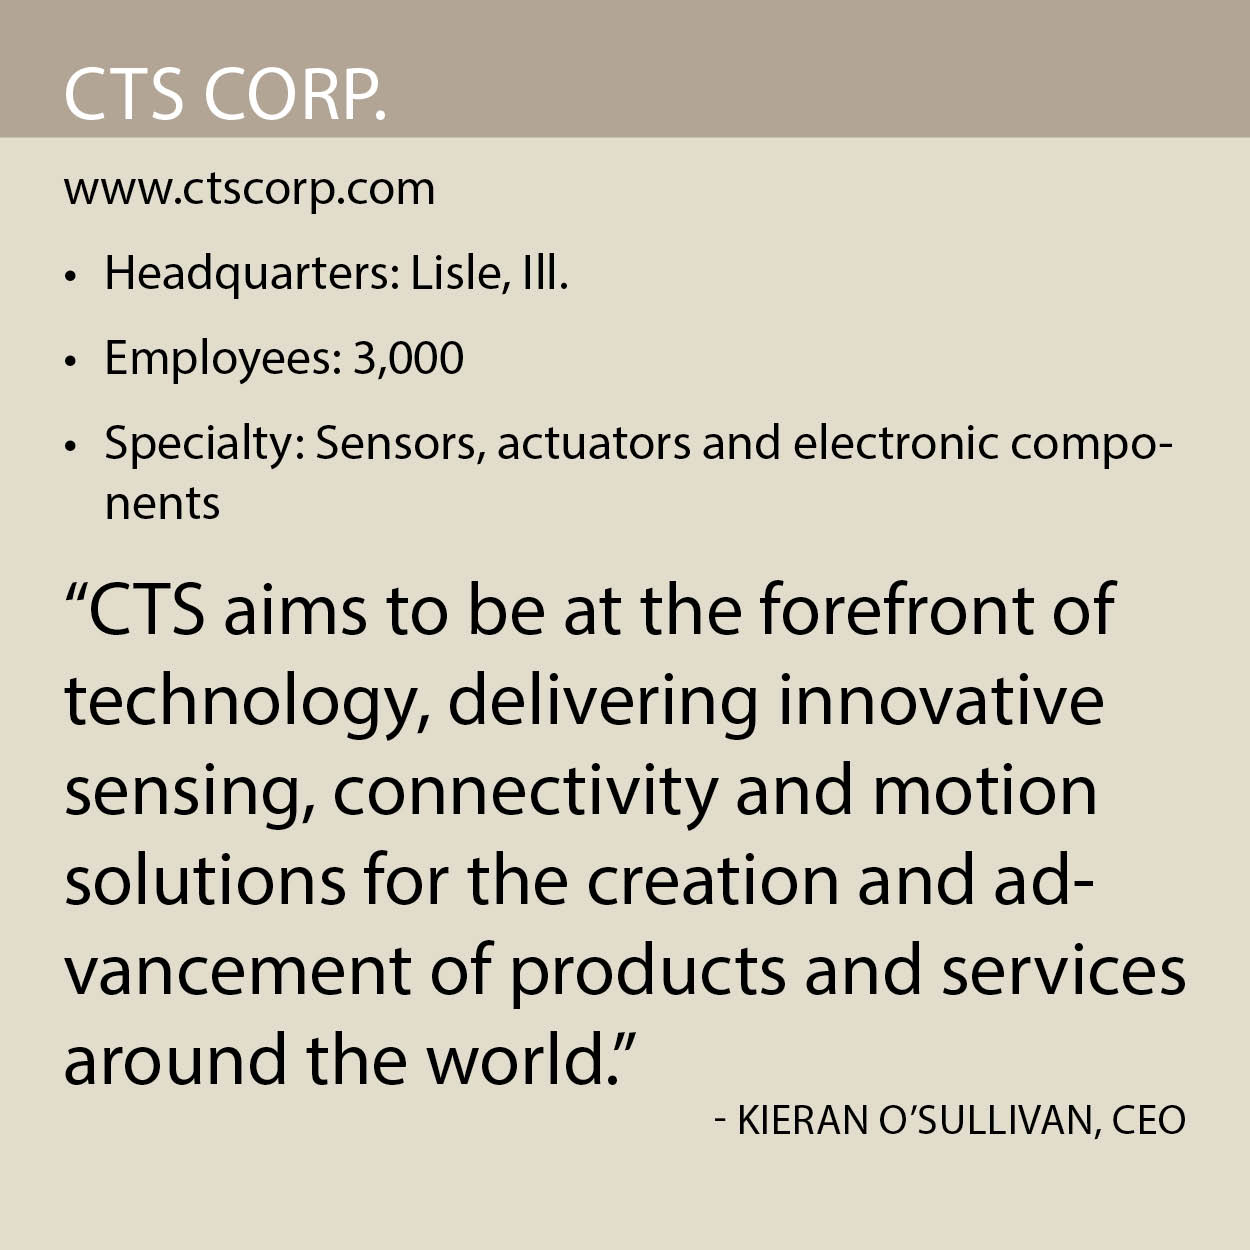 CTS Corp